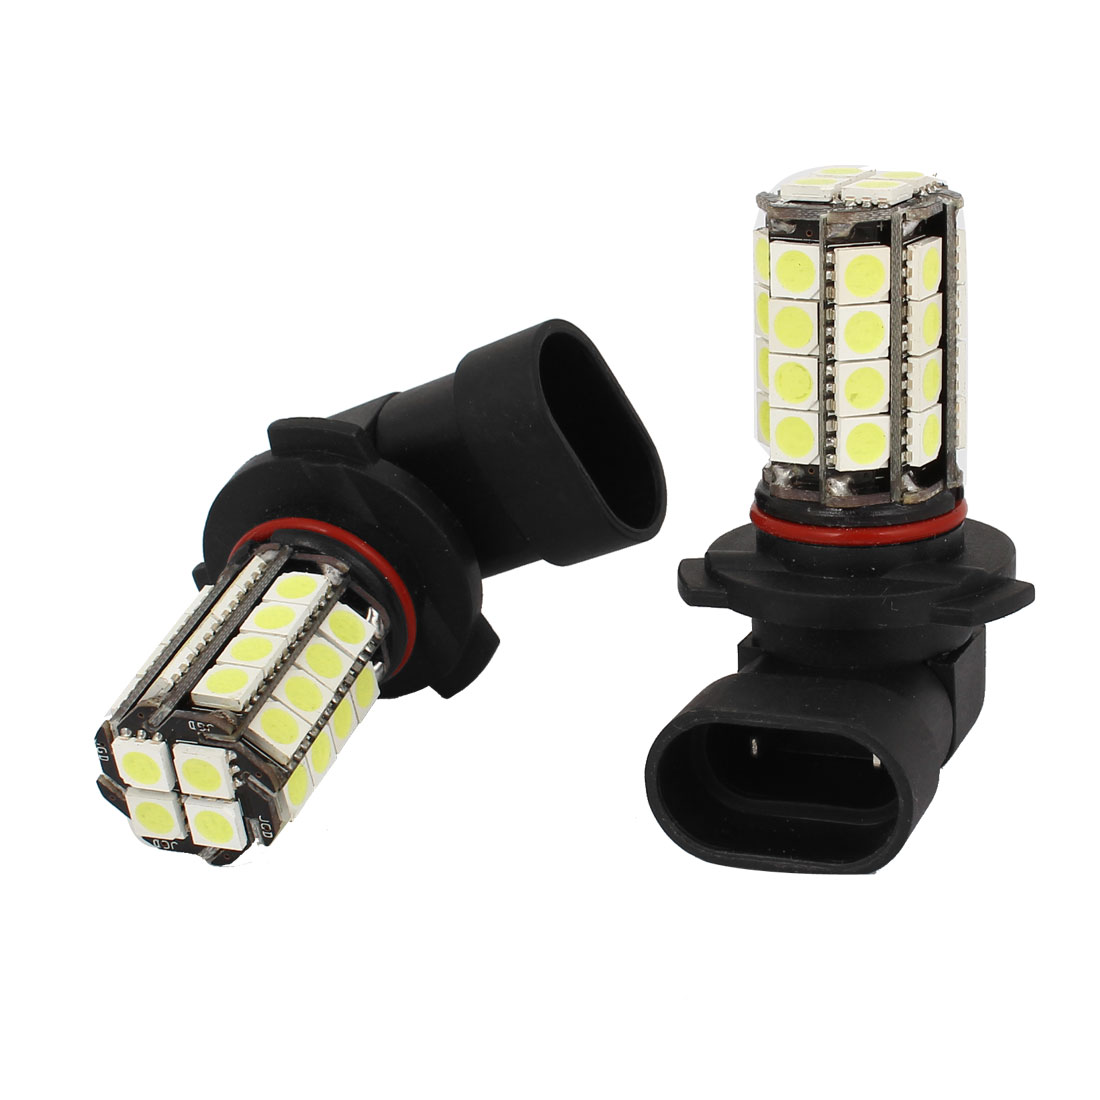 2 Pcs Car 9005 5050 SMD 36 LED White Fog Head Light Bulb Lamp DC 12V